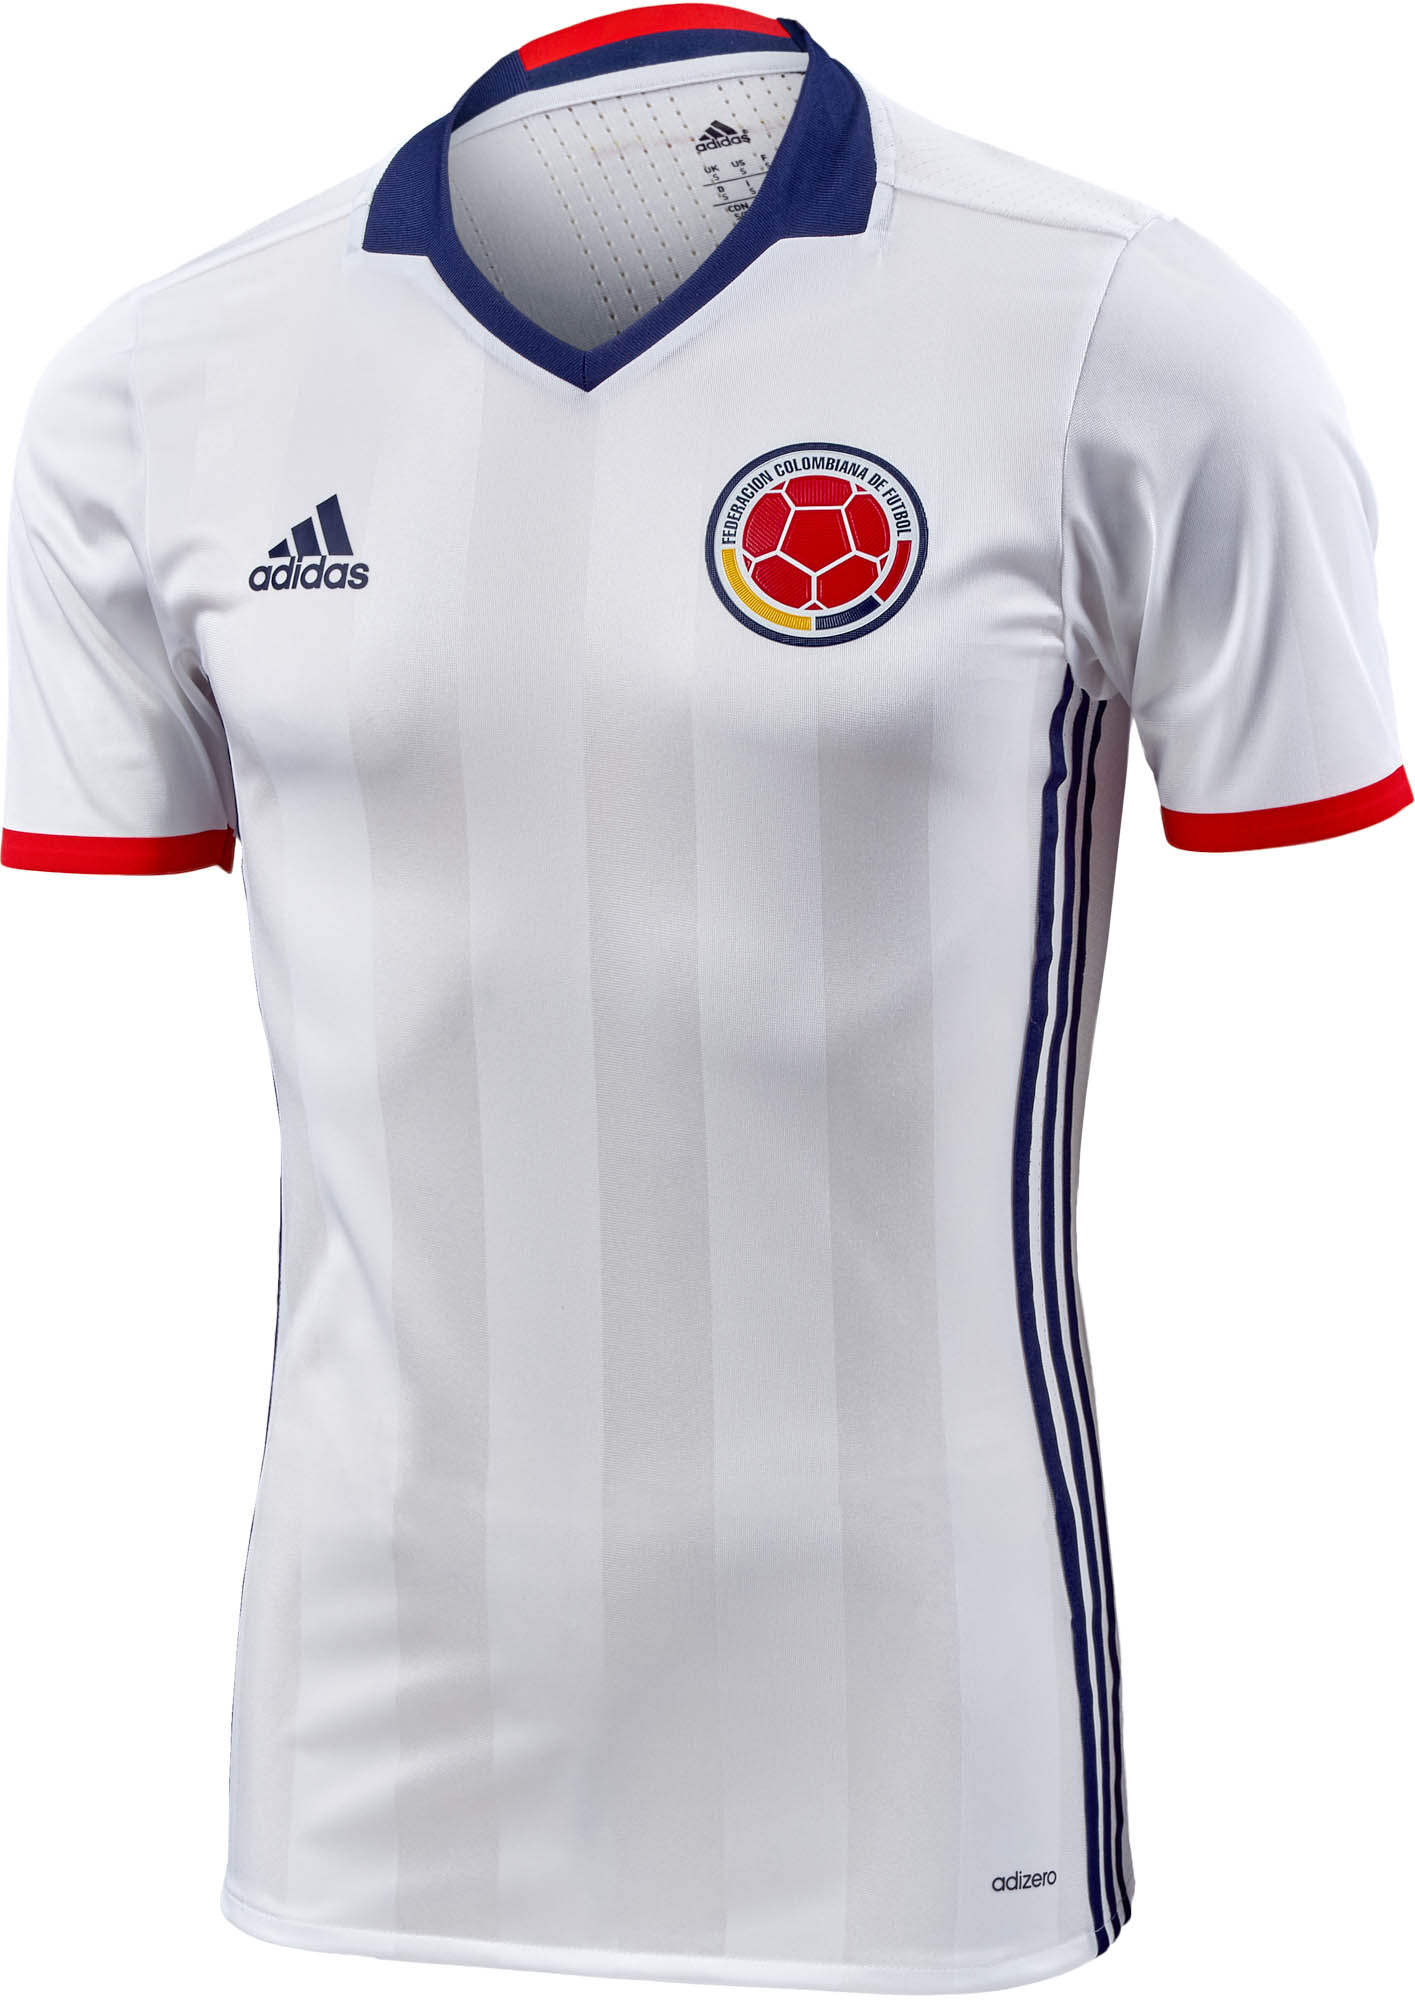 adidas Colombia Authentic Home Jersey - 2016 Colombia Jerseys 6349d1f15